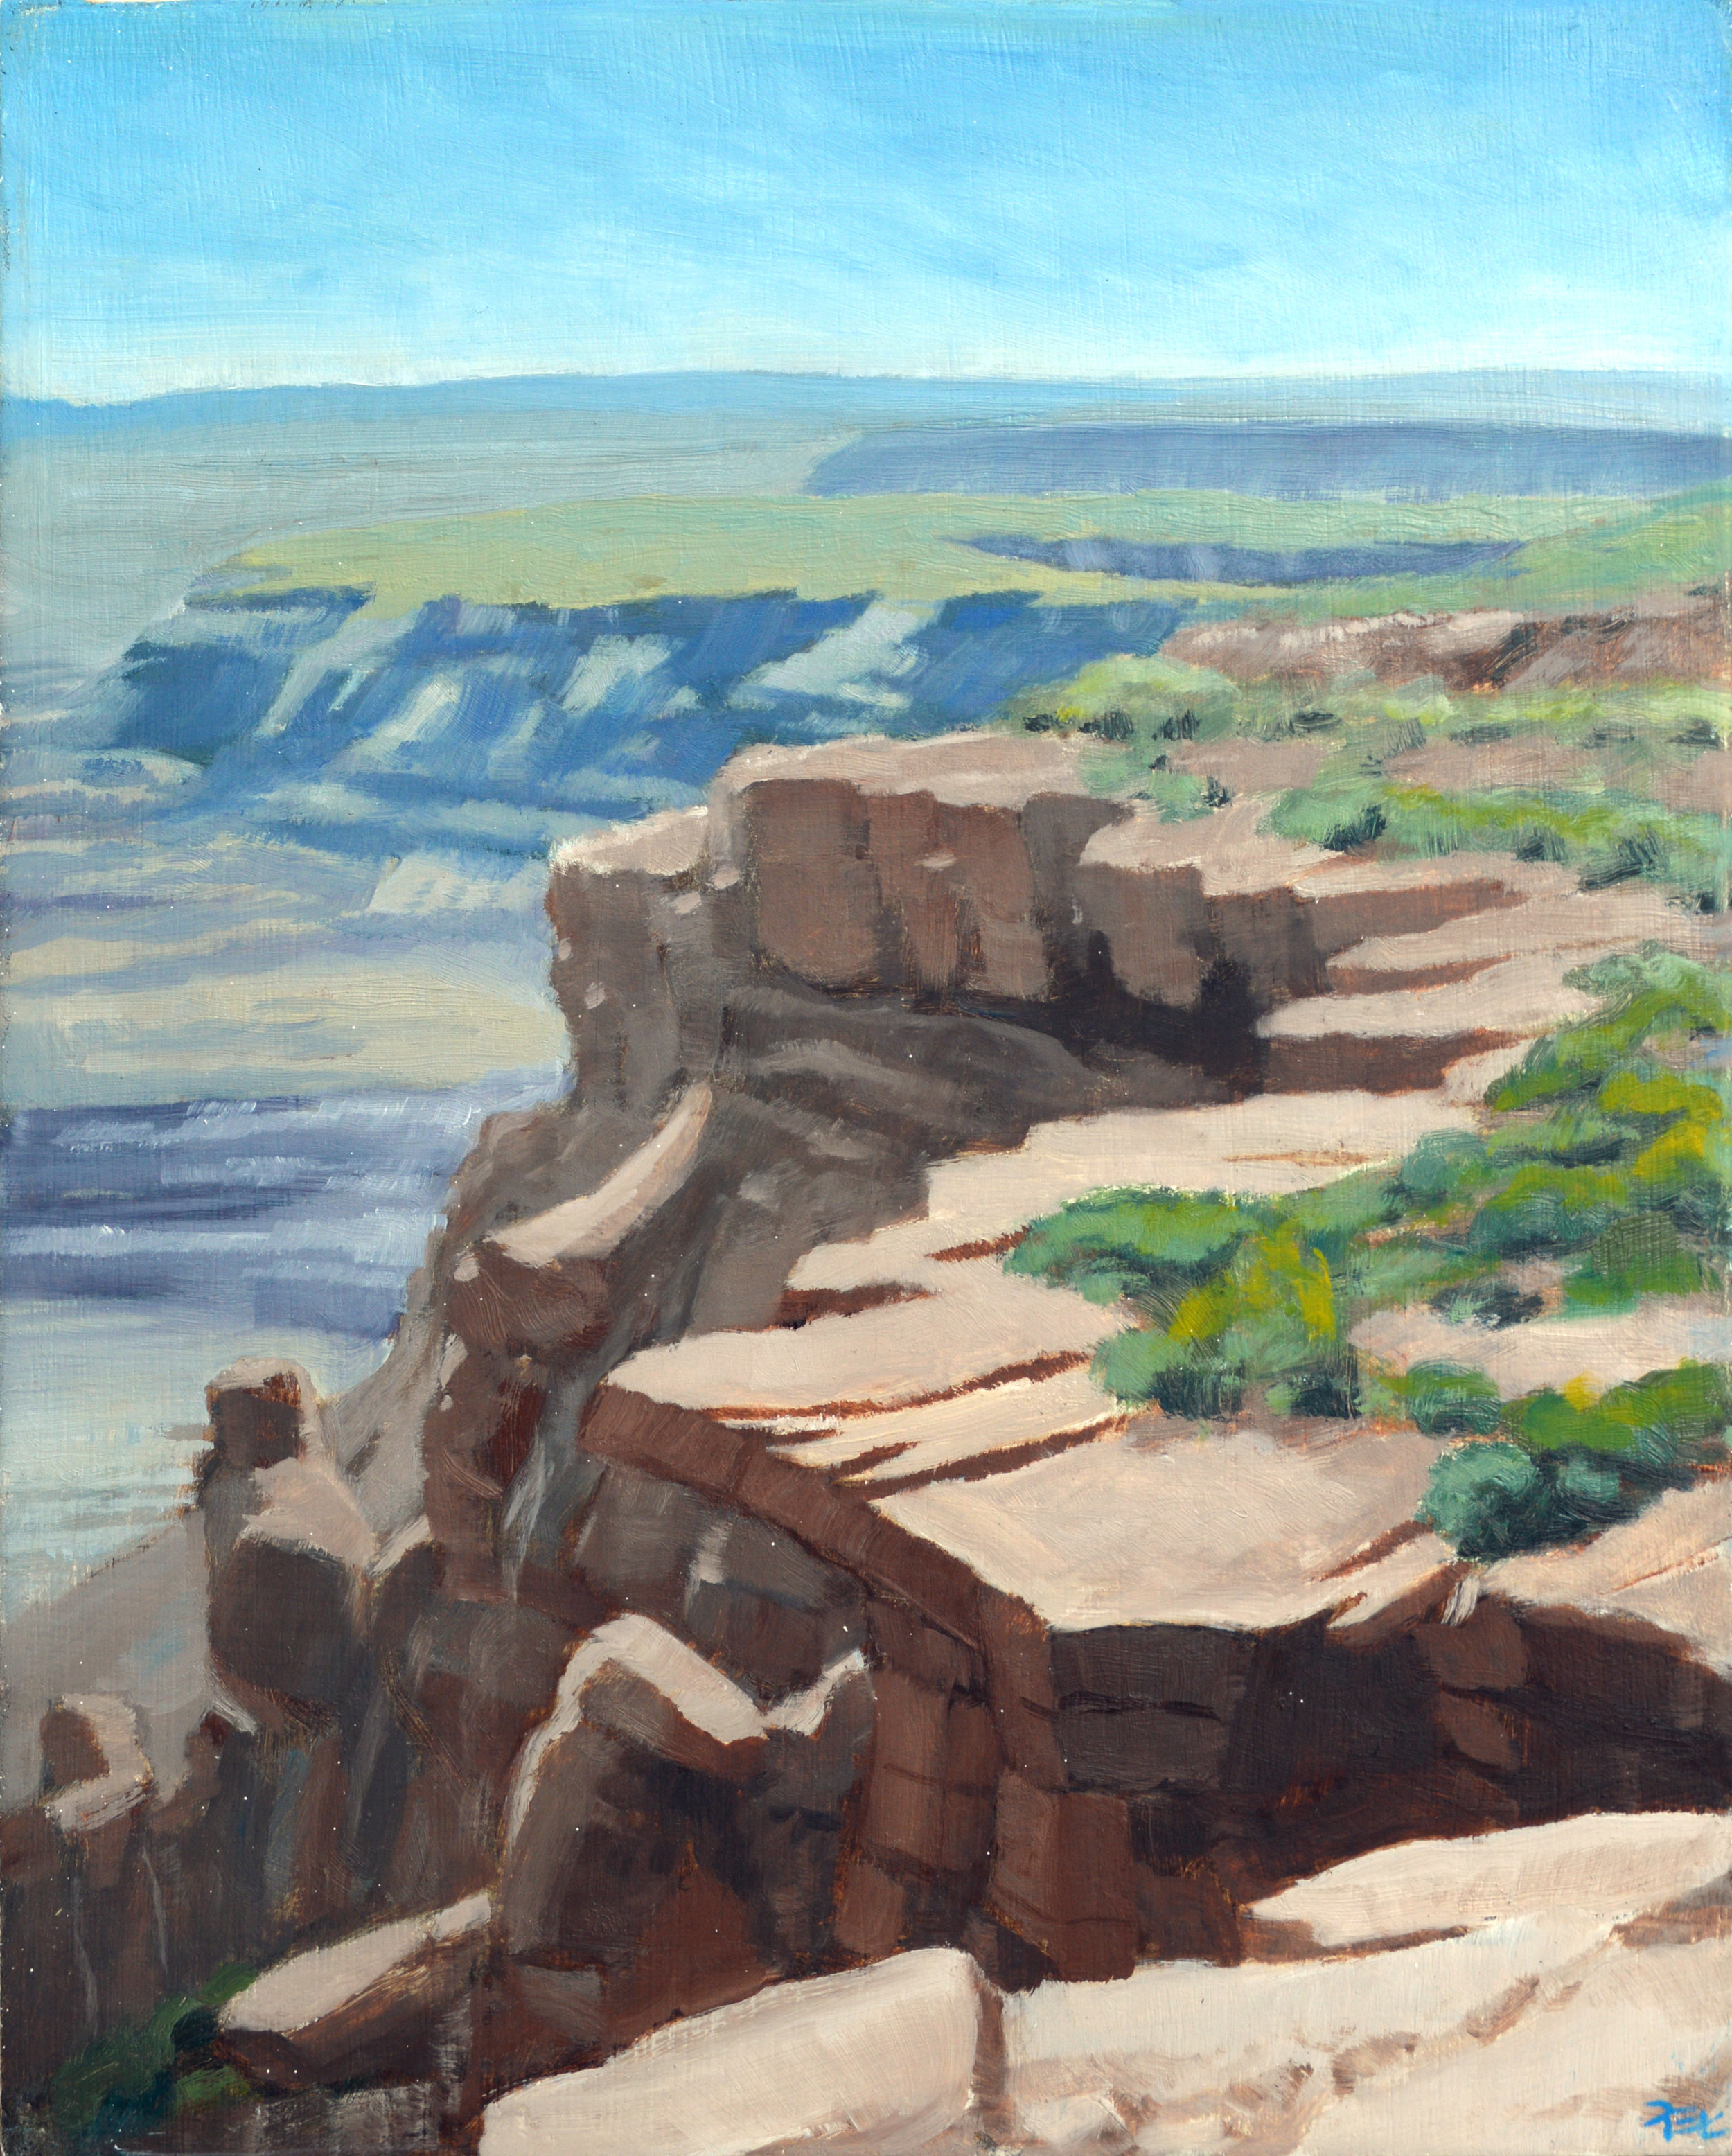 Billings Gap Overlook,  10 x 8 in.  Oil on panel. Private collection. (2017)